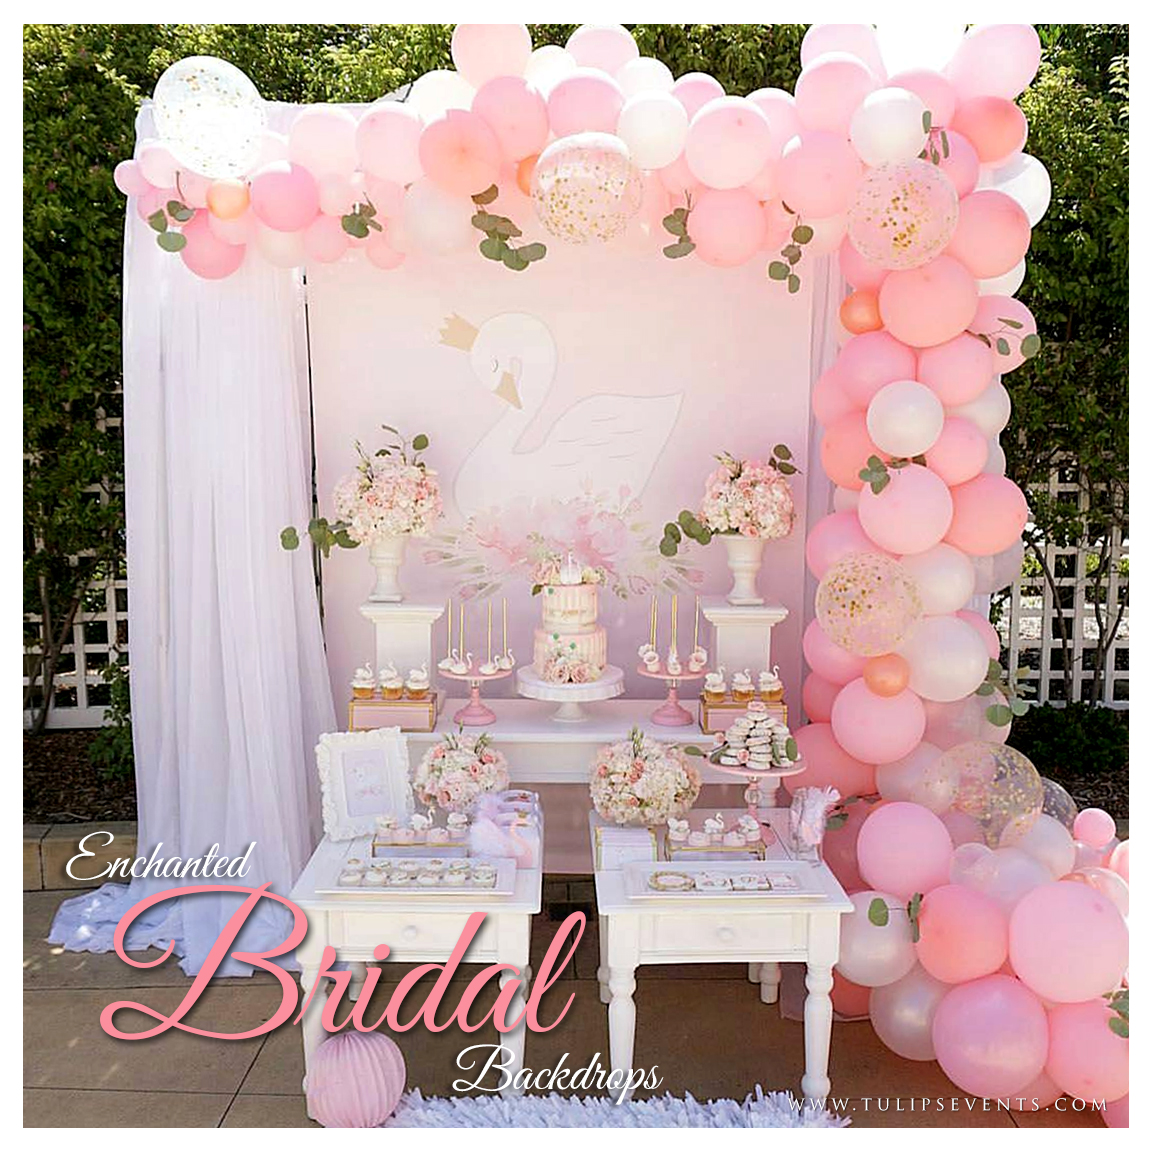 pink bridal shower party ideas in pakistan - tulips event management